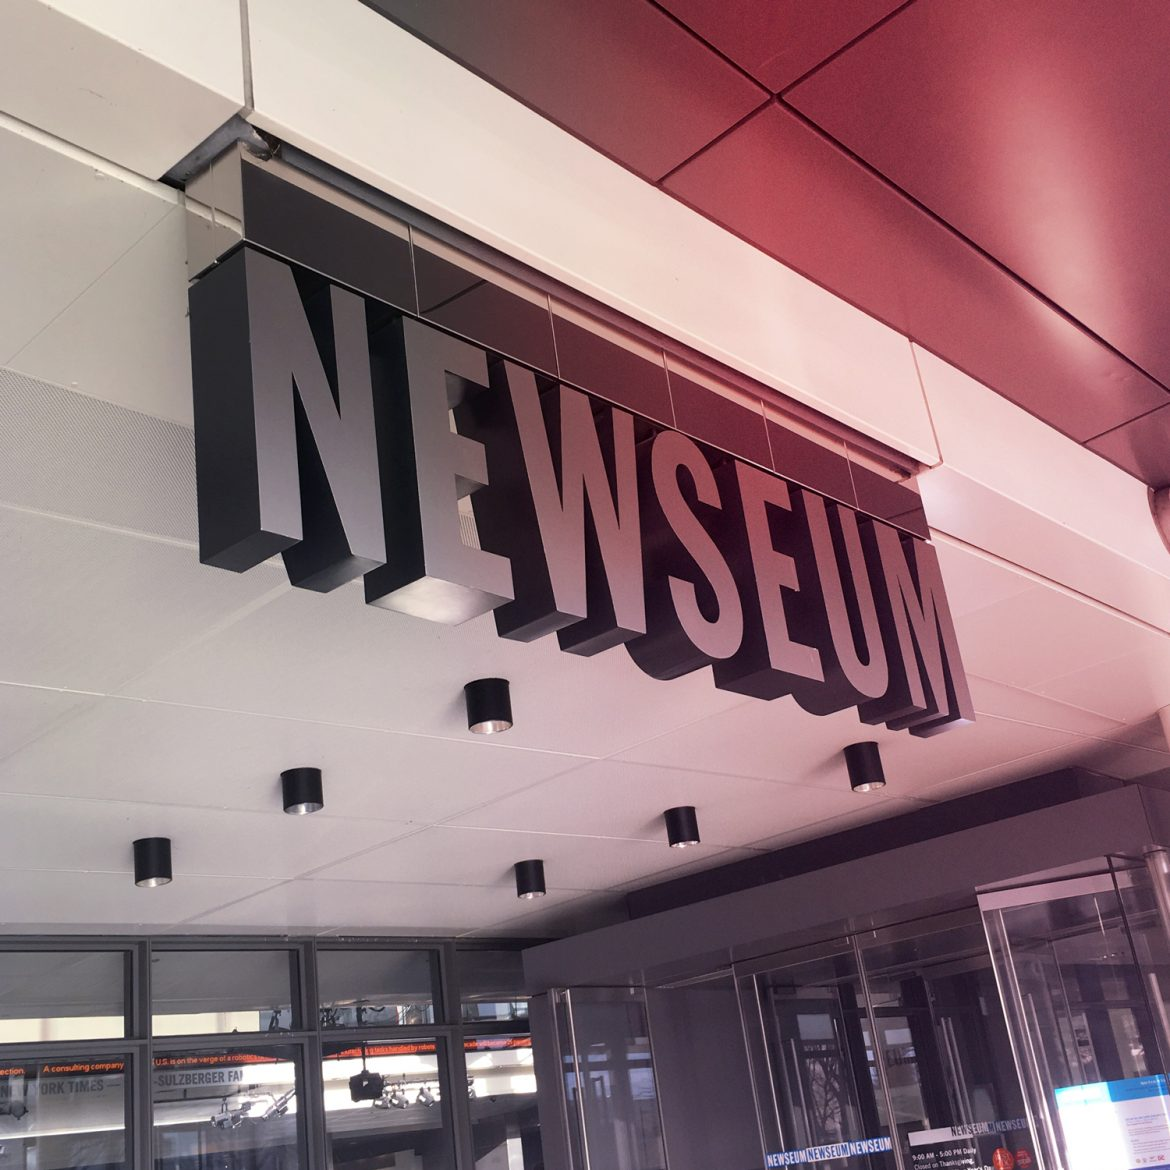 Newseum entrance.